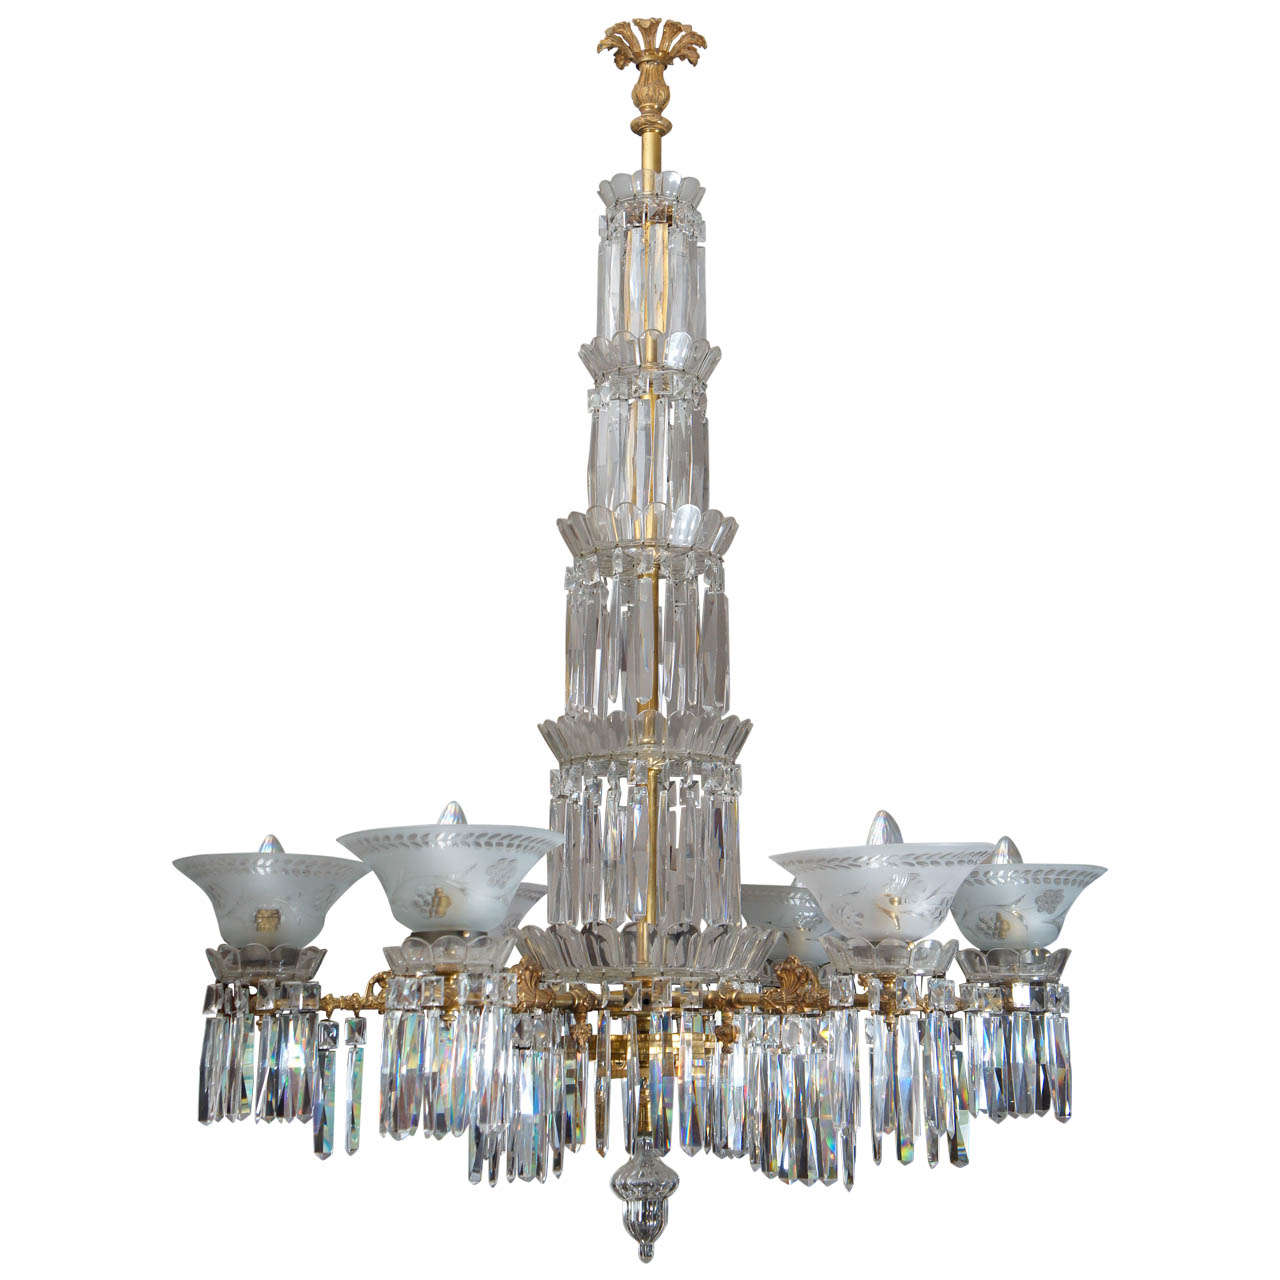 19th c. American Cut Crystal and Gilt Bronze 6 Light Gasolier/Chandelier